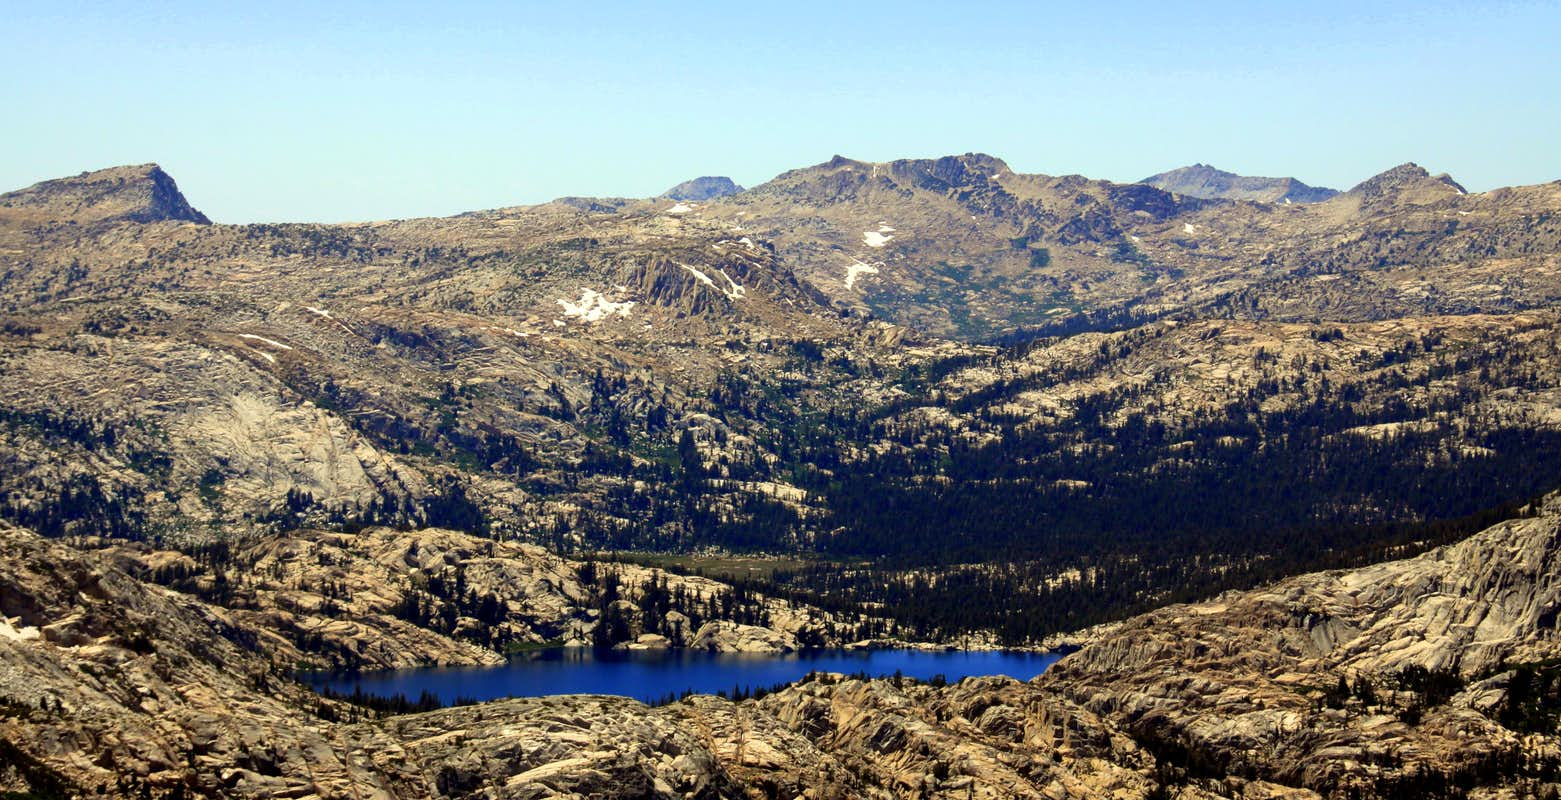 Peeler Lake : Photos, Diagrams & Topos : SummitPost